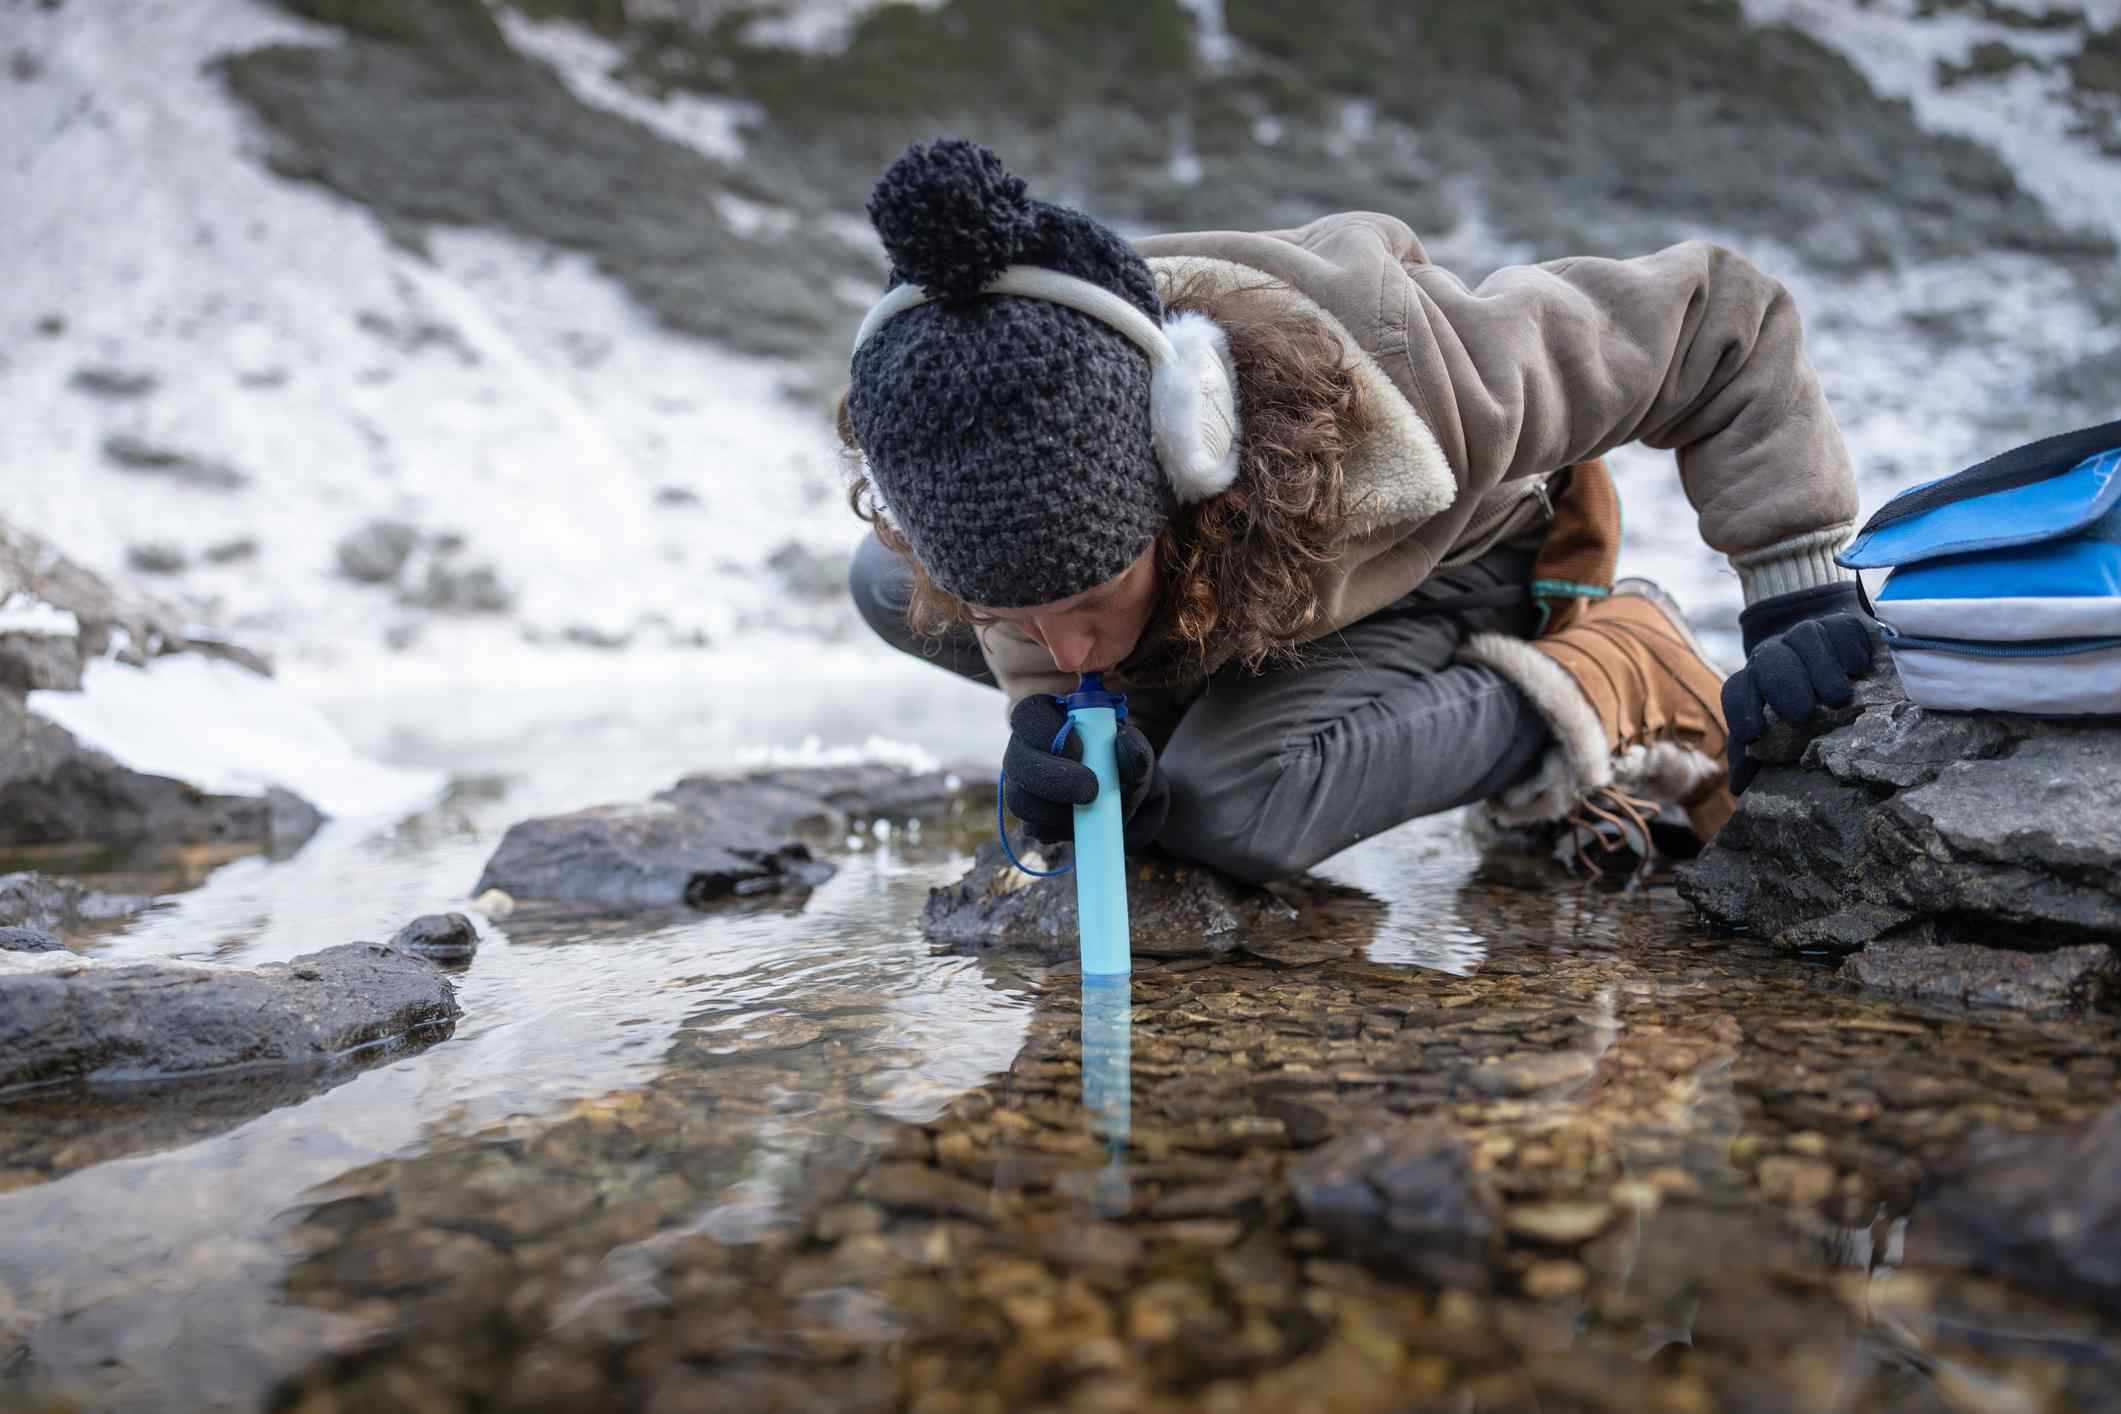 woman using a water filtration straw outside in a stream, winter